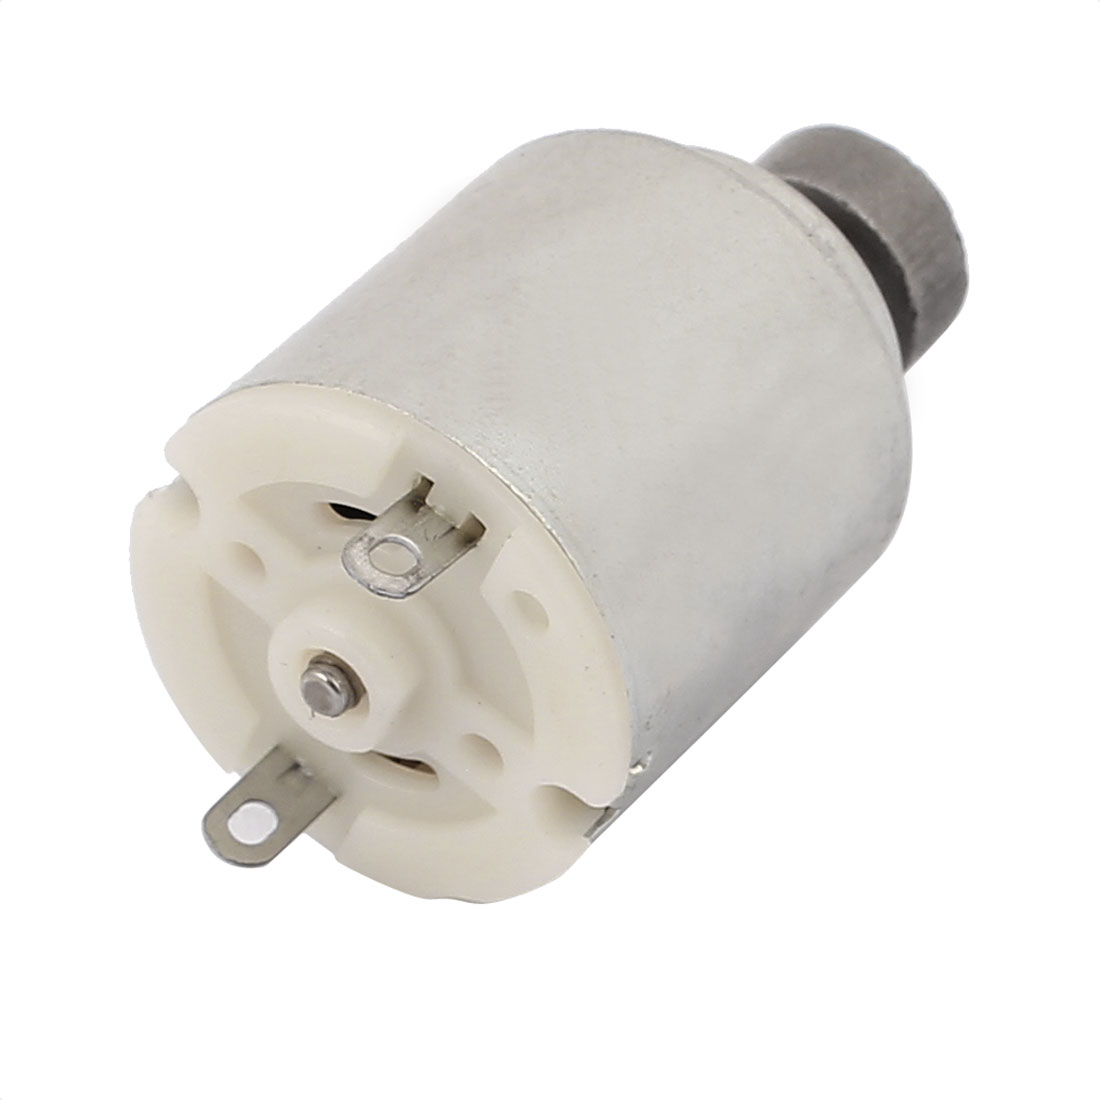 DC1.5-6V 17000RPM High Torque Cylinder Micro Vibration Motor for RC Aircraft - image 1 of 2